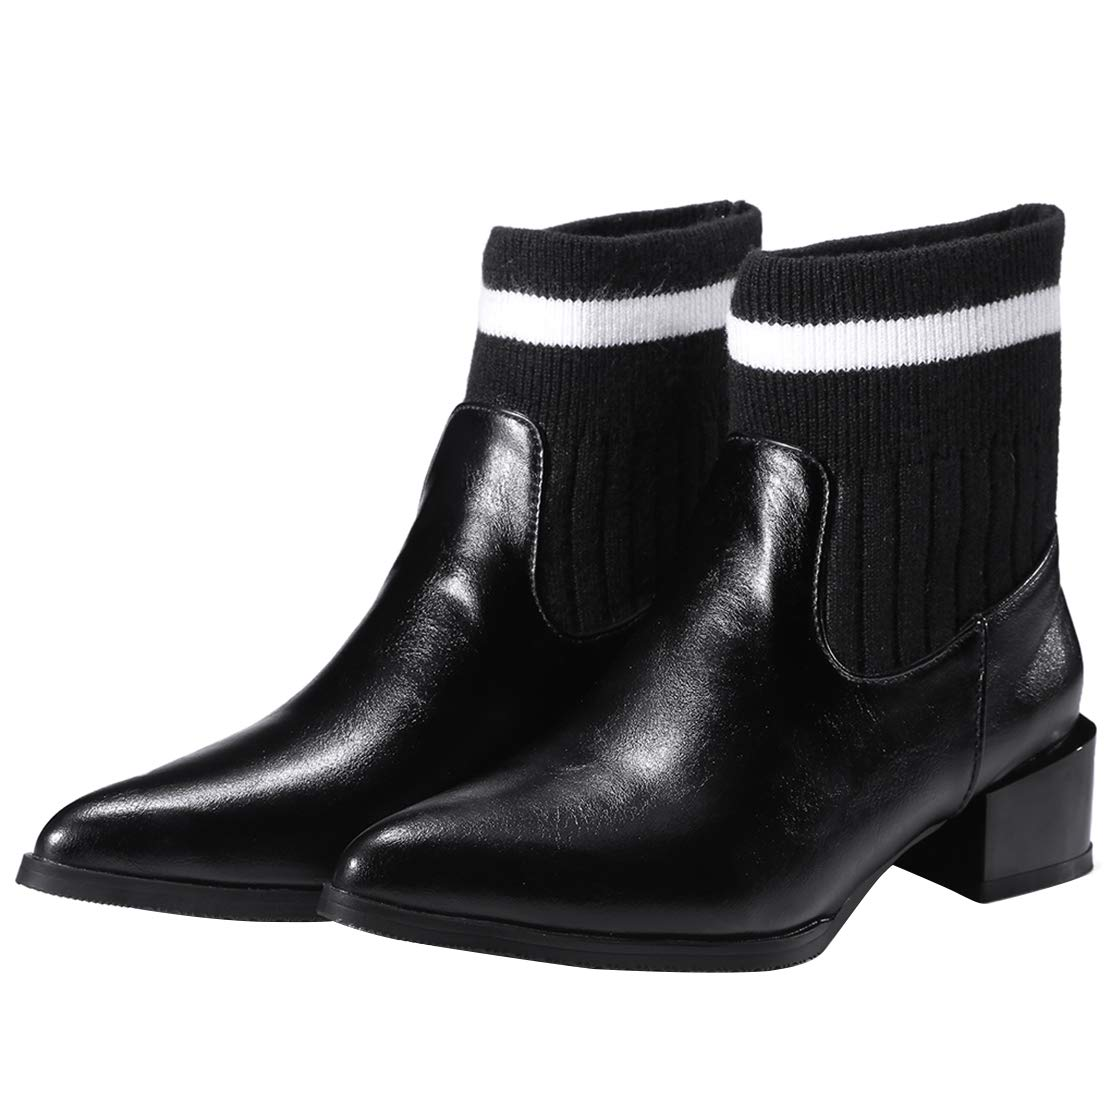 AIYOUMEI Women Knitting Ankle Boots Pointy Toe Low Block Heel Booties Slip On Shoes Autumn